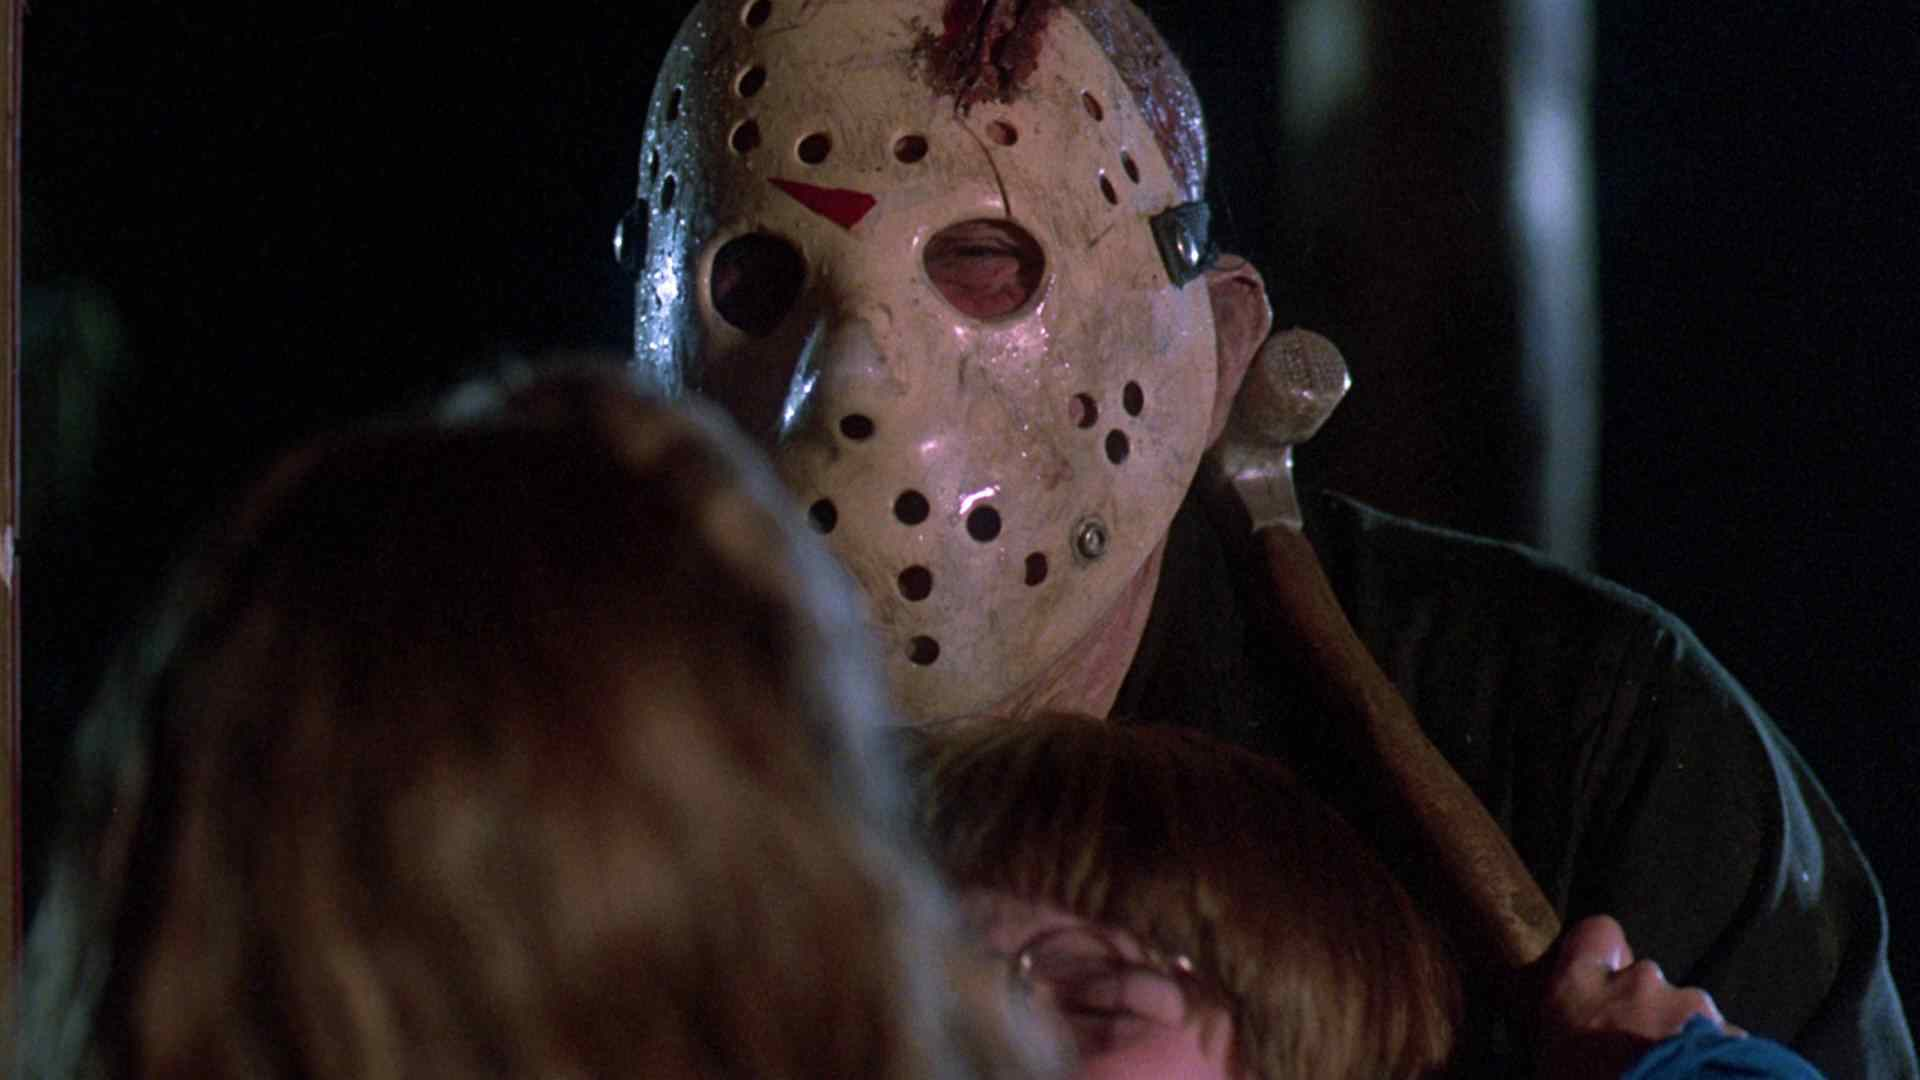 Trish nails Jason in Friday the 13th - The Final Chapter